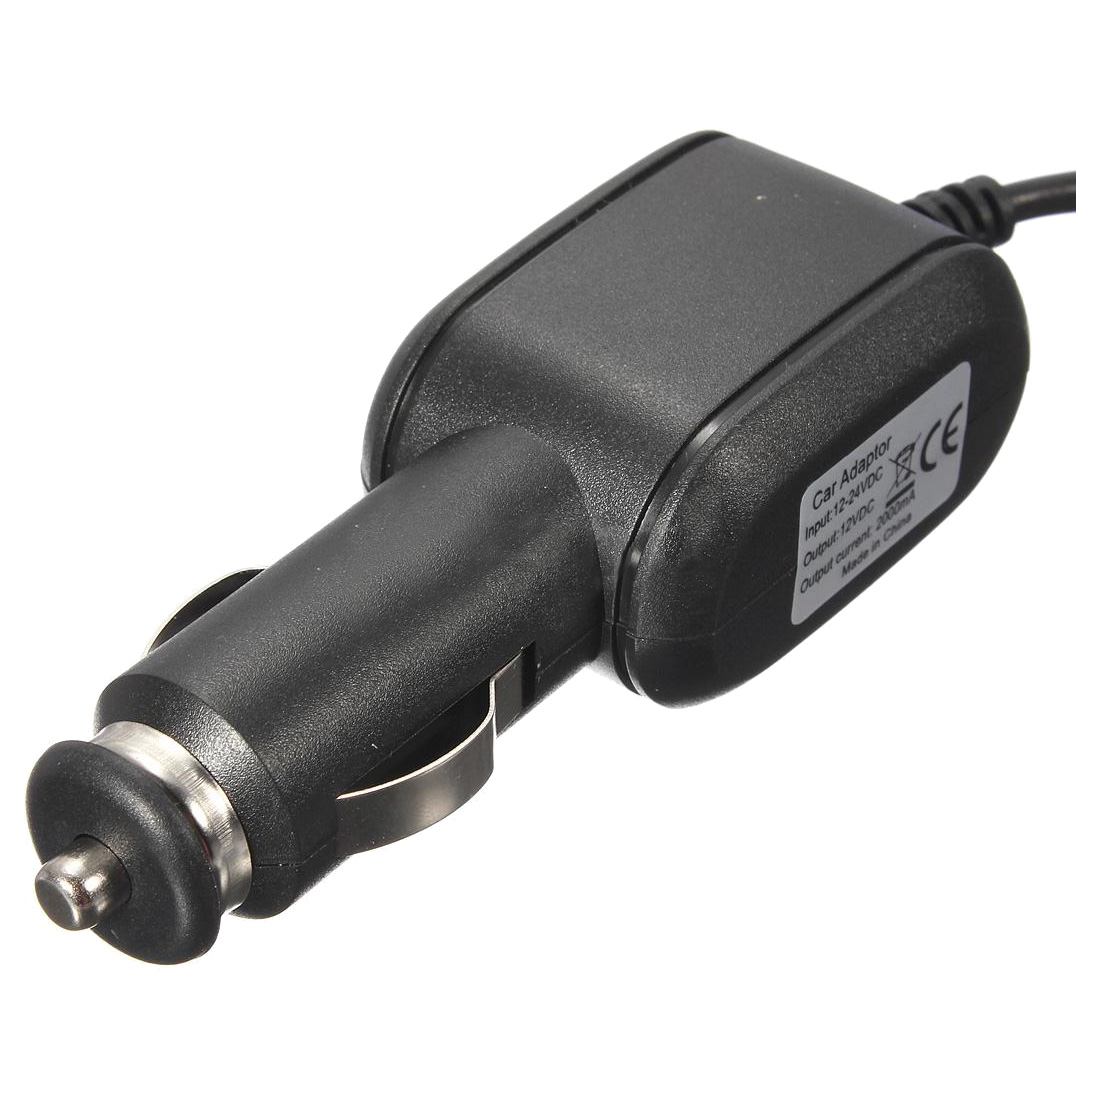 Car Charger for Microsoft Surface RT / Pro / 2 Tablet PCCar Charger for Microsoft Surface RT / Pro / 2 Tablet PC